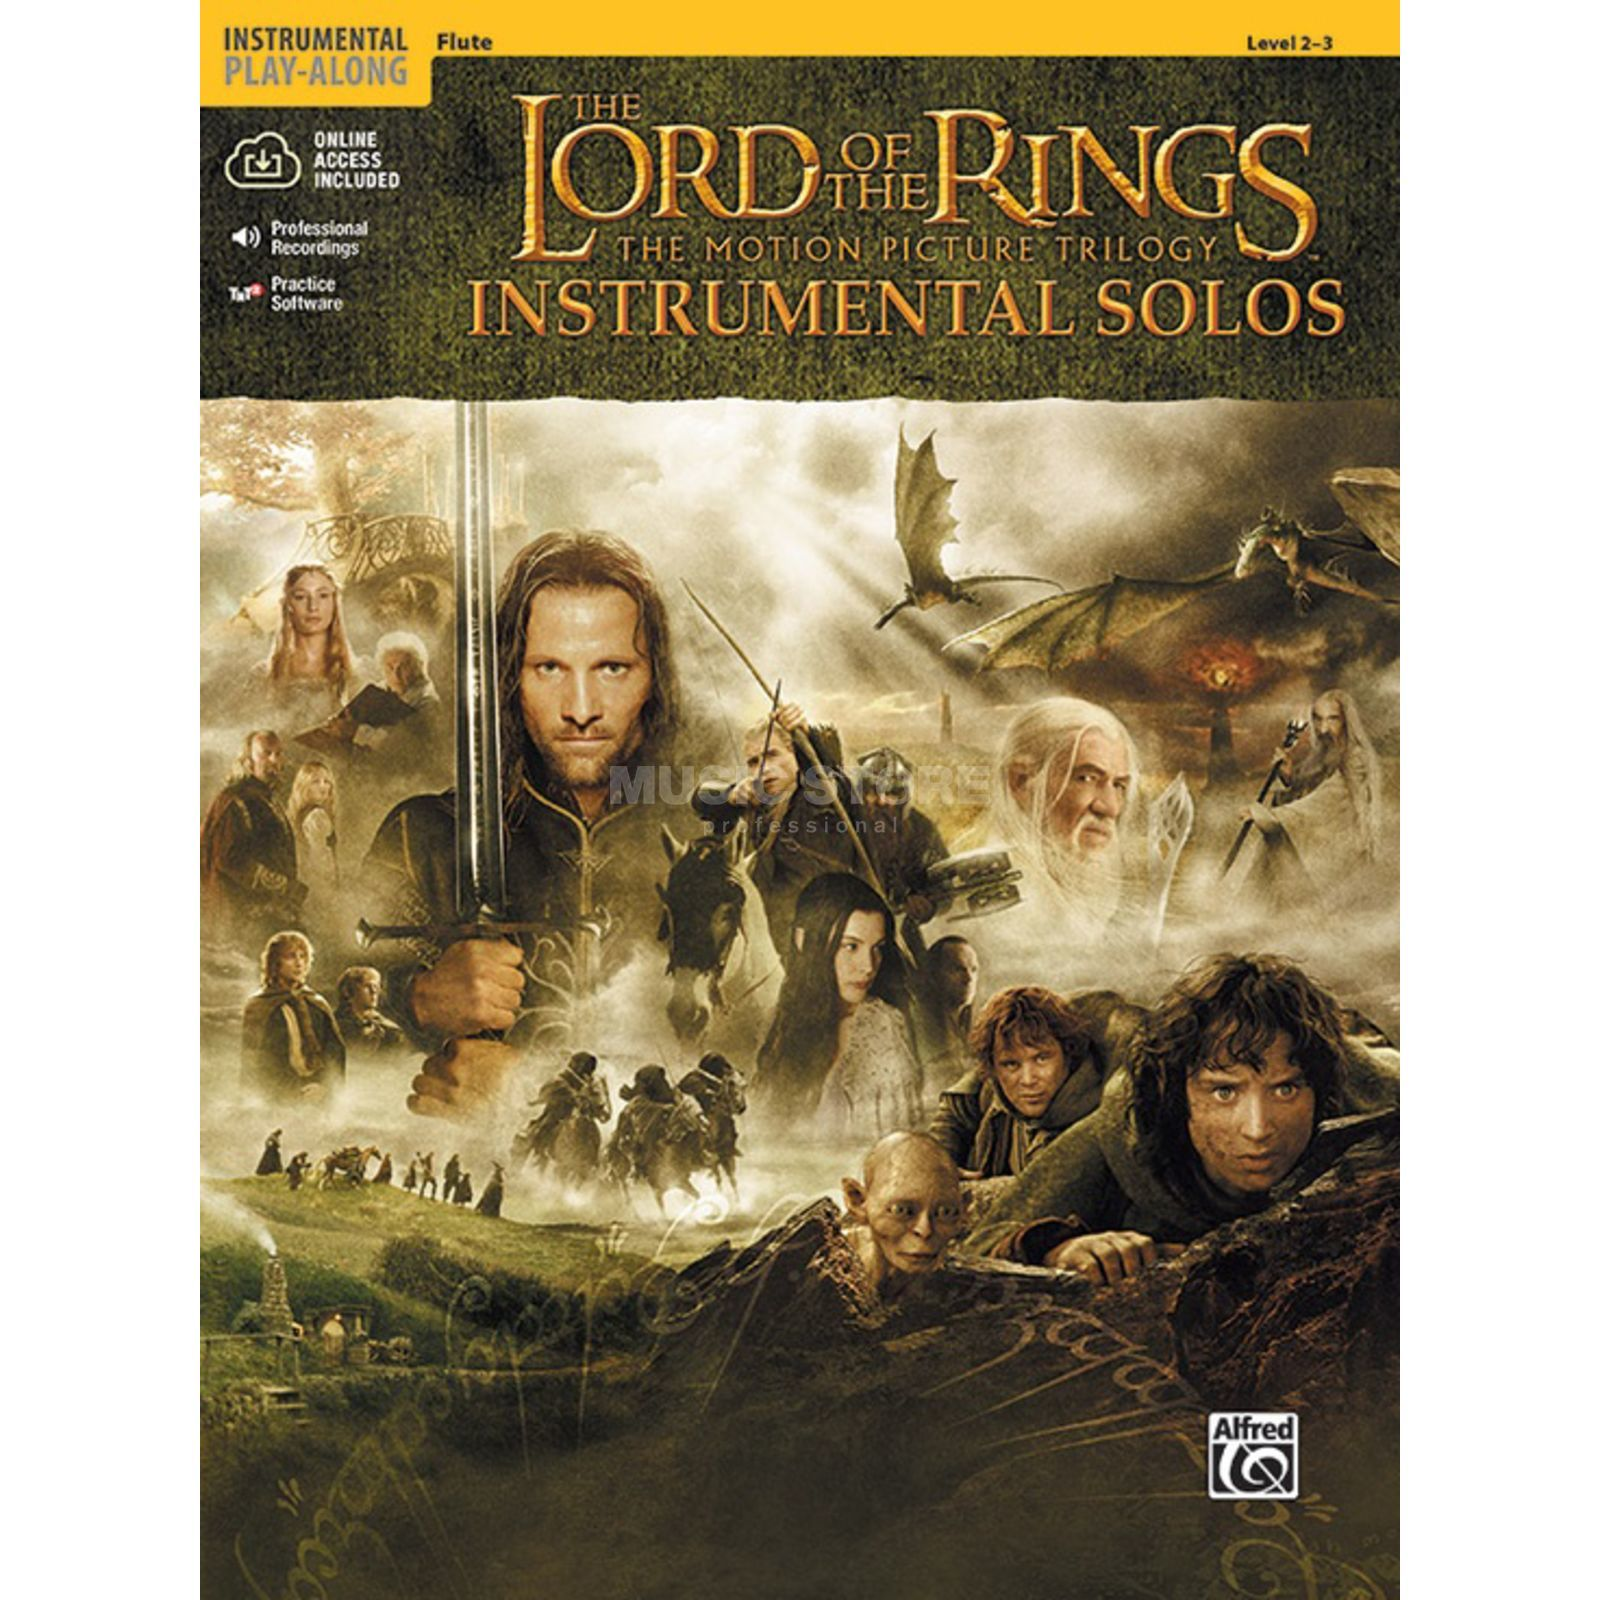 Alfred Music Lord of the Rings - Flute Instrumental Solos, Book/CD Produktbillede